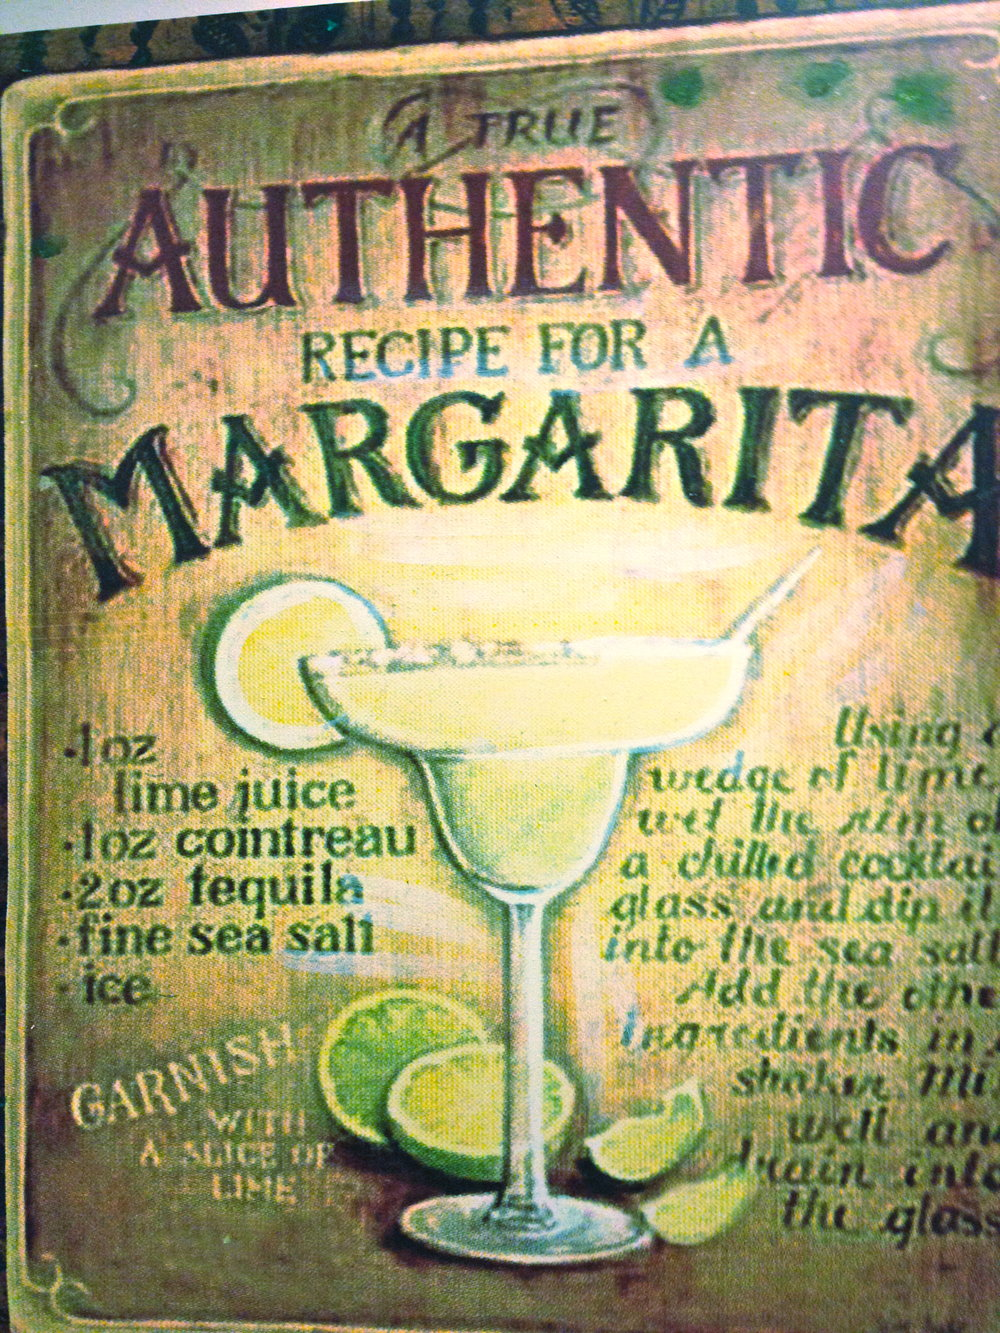 Casa Coco Margarita Recipe Sign